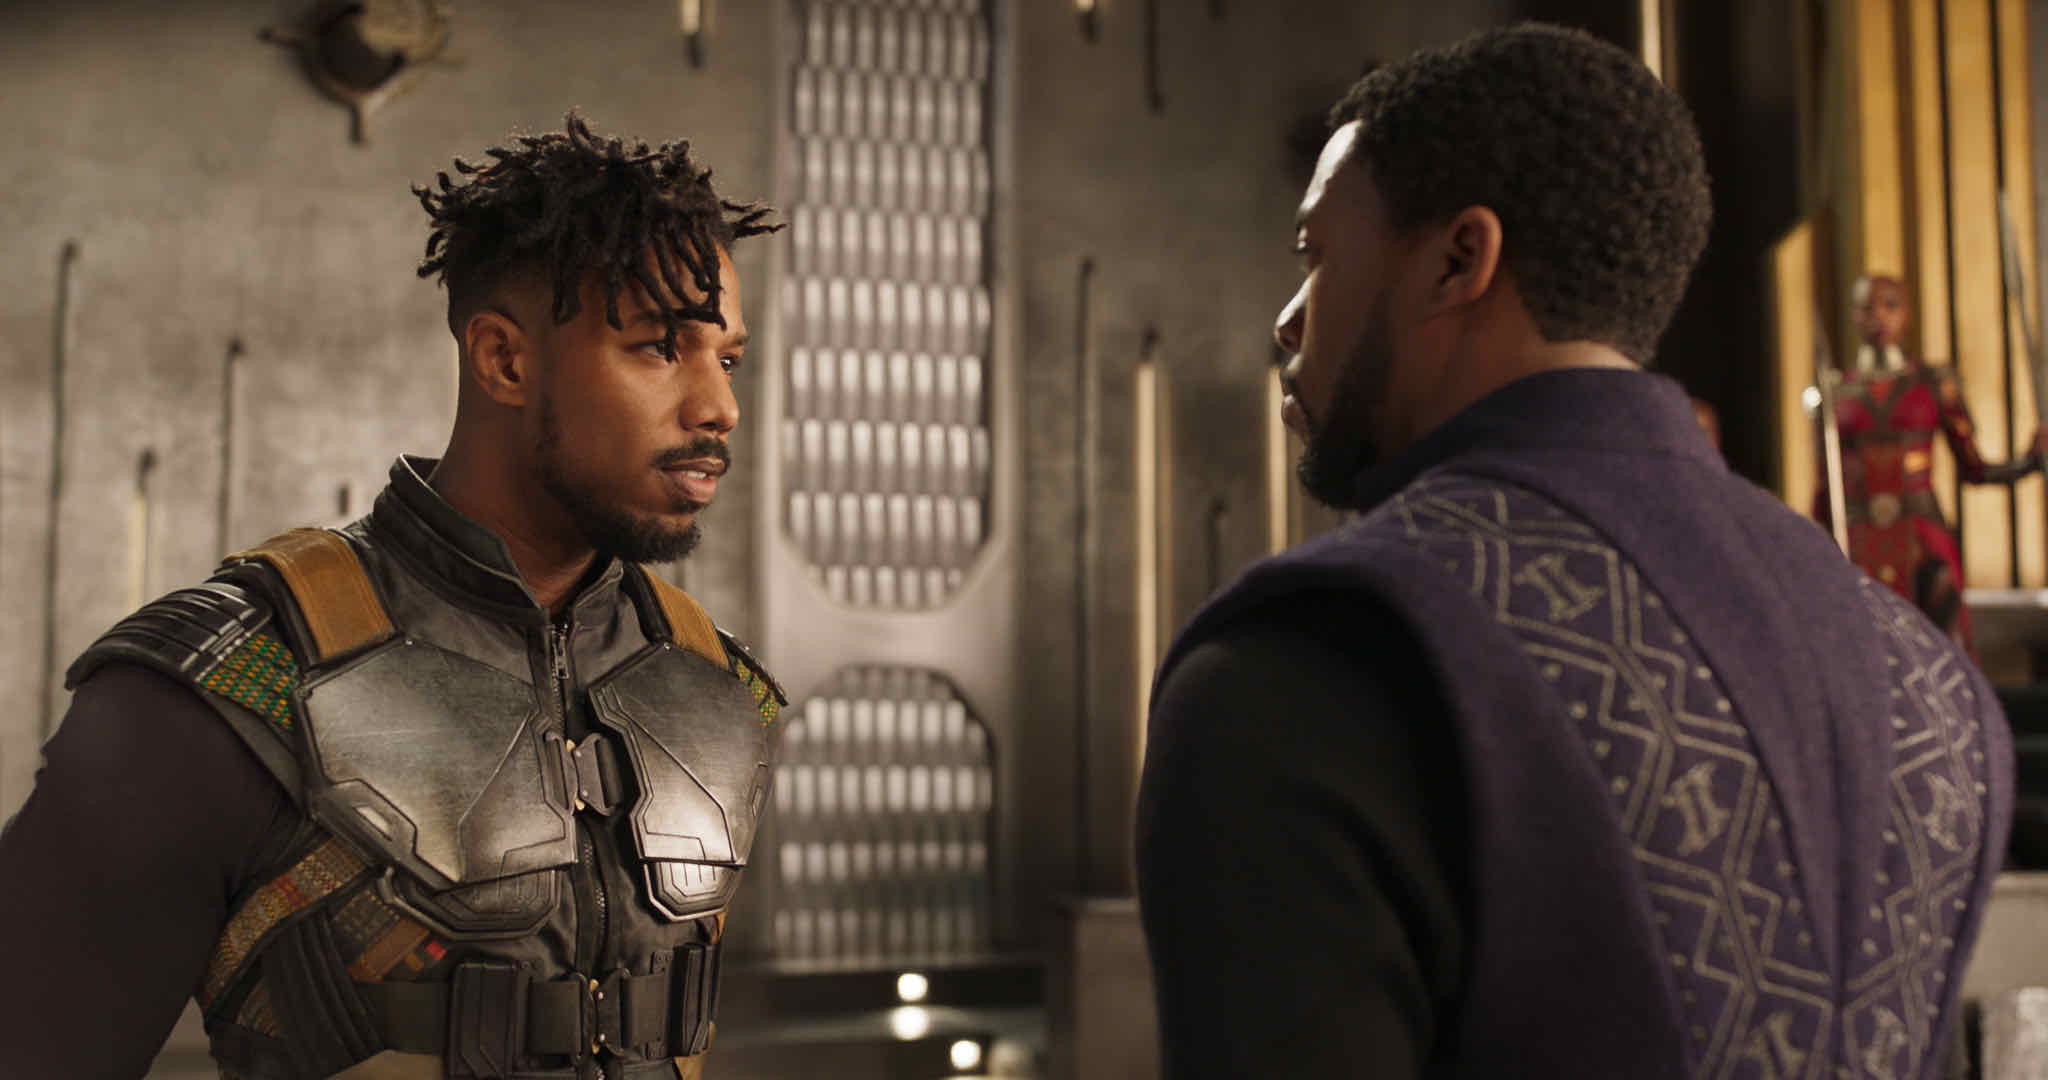 'Black Panther' is in Ninth Place for All-Time Box Office